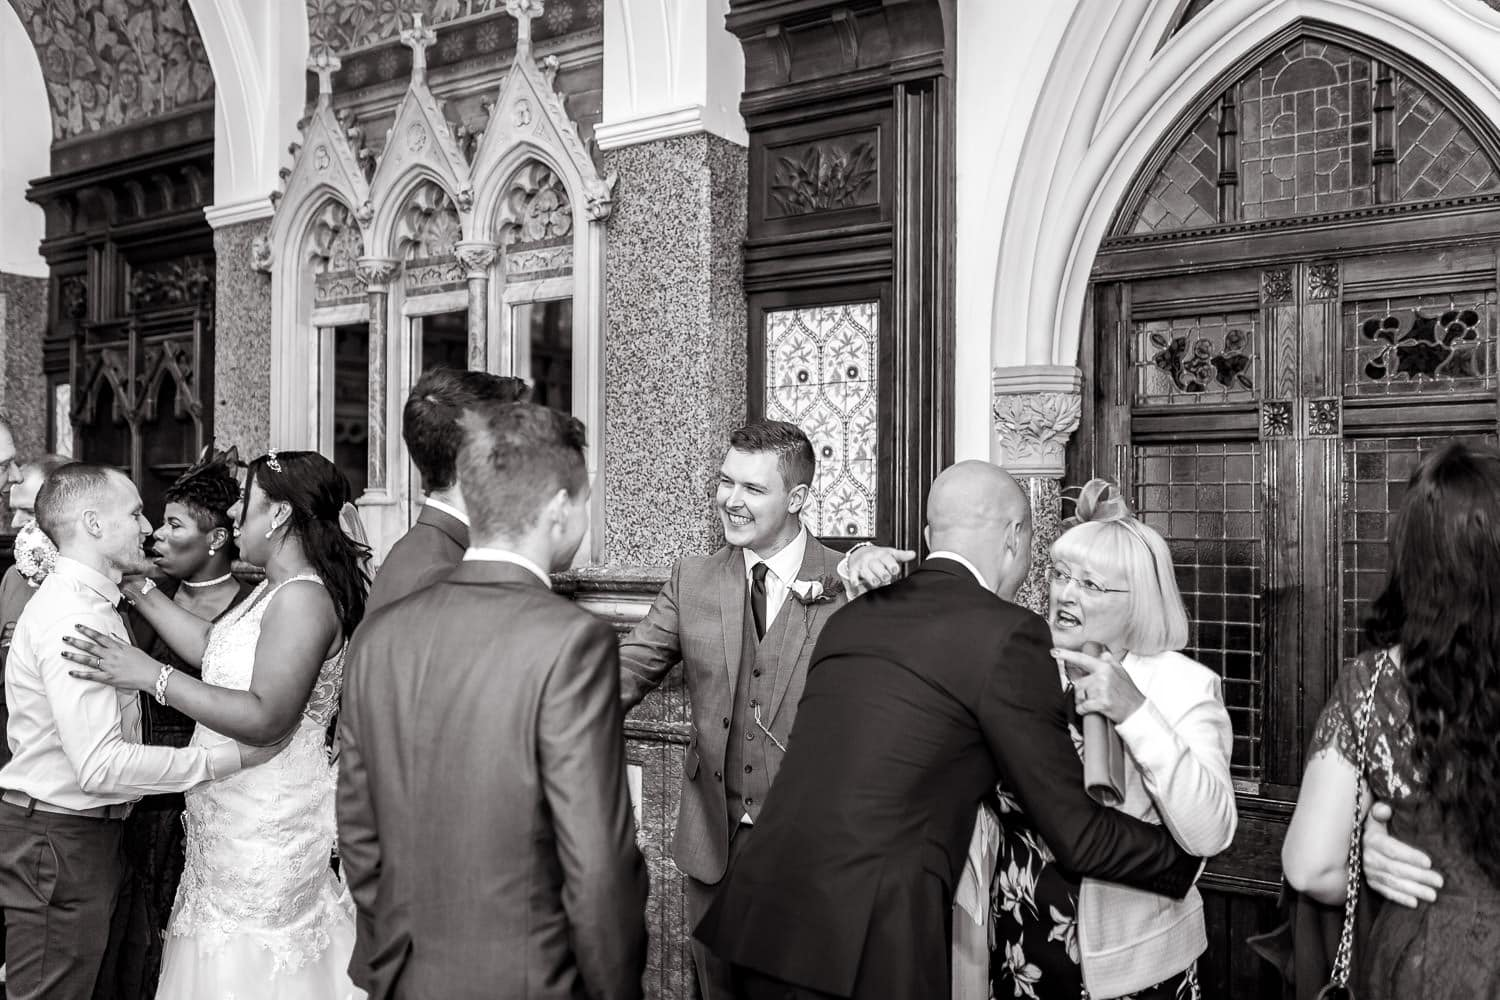 guests and family greet each other at wedding receiving line